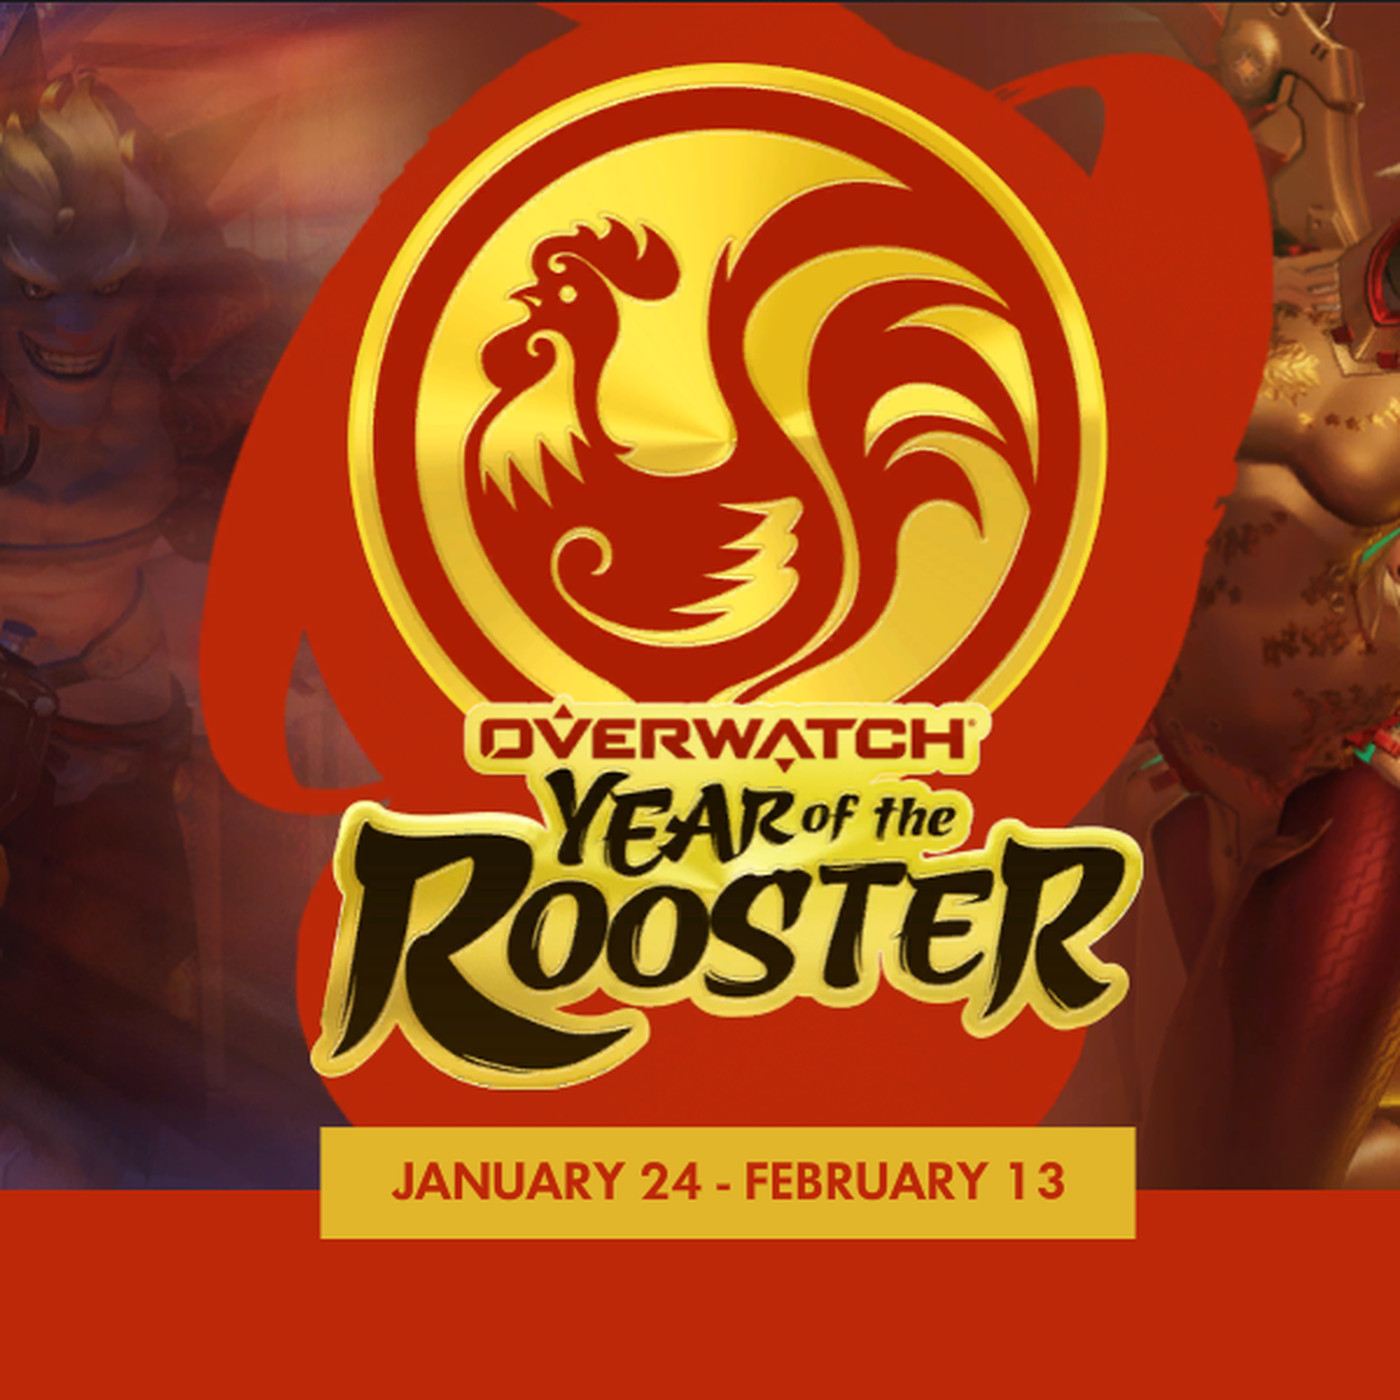 Overwatch brings in the Year of the Rooster with a new